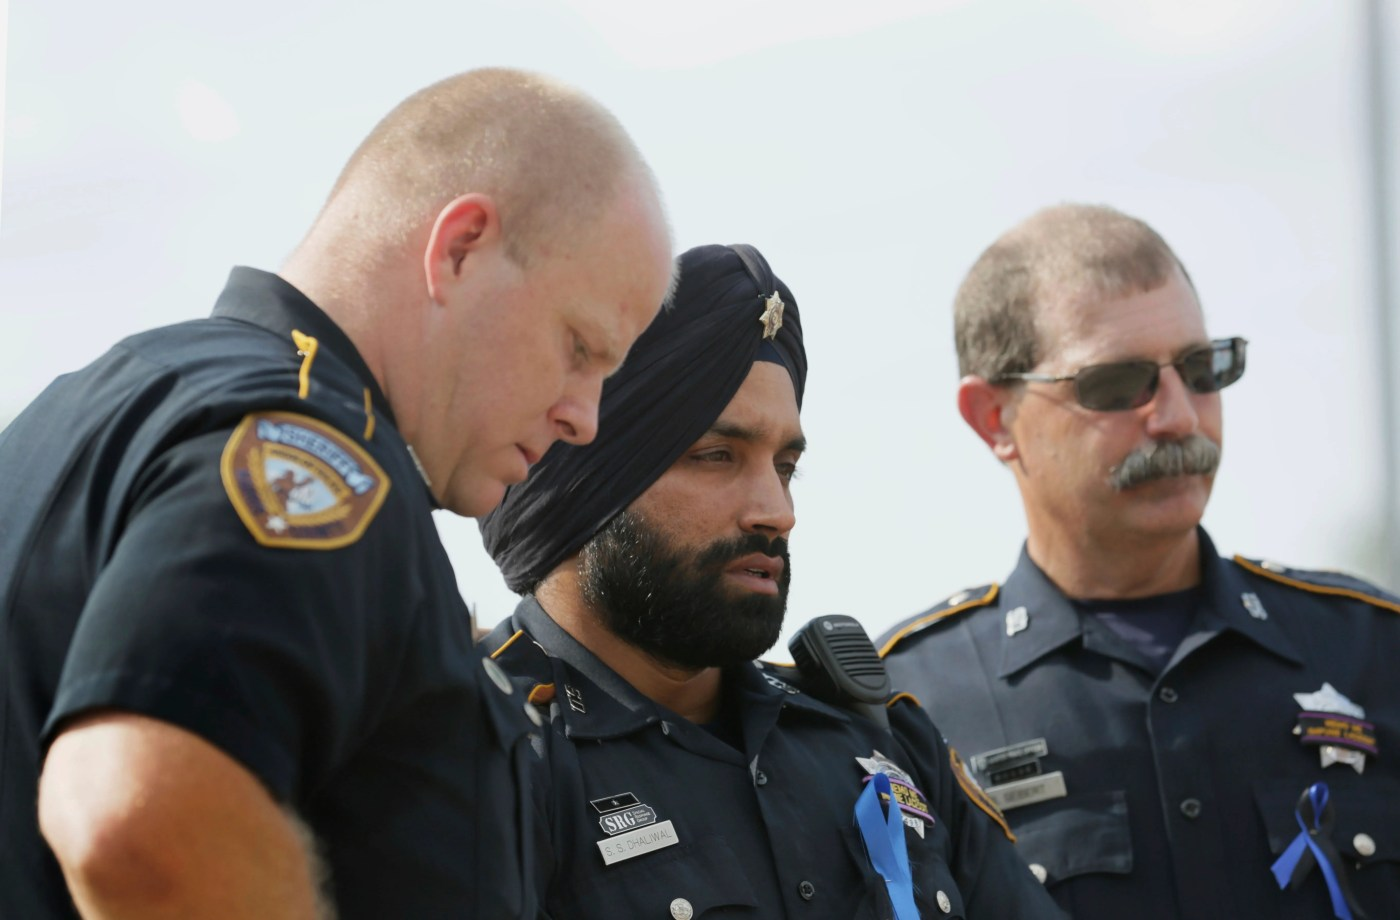 In this Aug. 30, 2015, photo, Harris County Sheriff's Deputy Sandeep Dhaliwal, center, is seen during a memorial for Deputy Darren Goforth in Houston. Dhaliwal was shot and killed while making a traffic stop Friday, Sept. 27, 2019, near Houston.